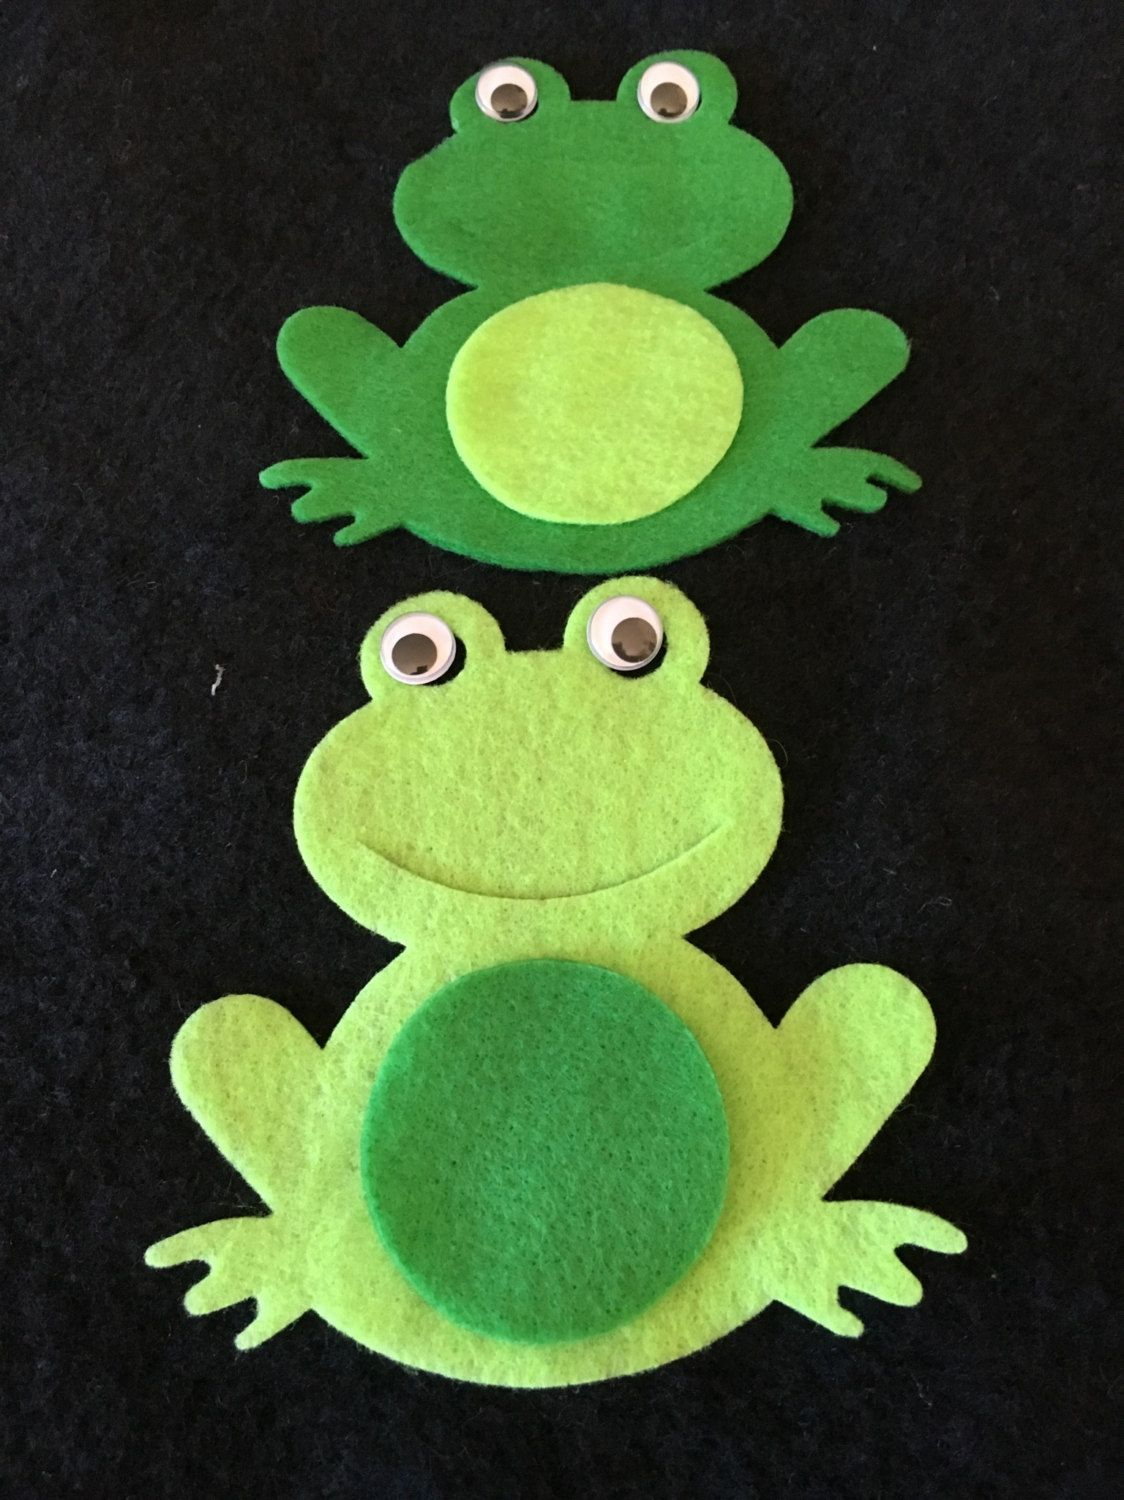 Felt Frog Shapes-DIY Kits for Parties and School-Boy Birthday Party Craft Kits-Quiet Books-Felt Die Cut Frog-Frog Applique-Embellishment #dolistsorbooks